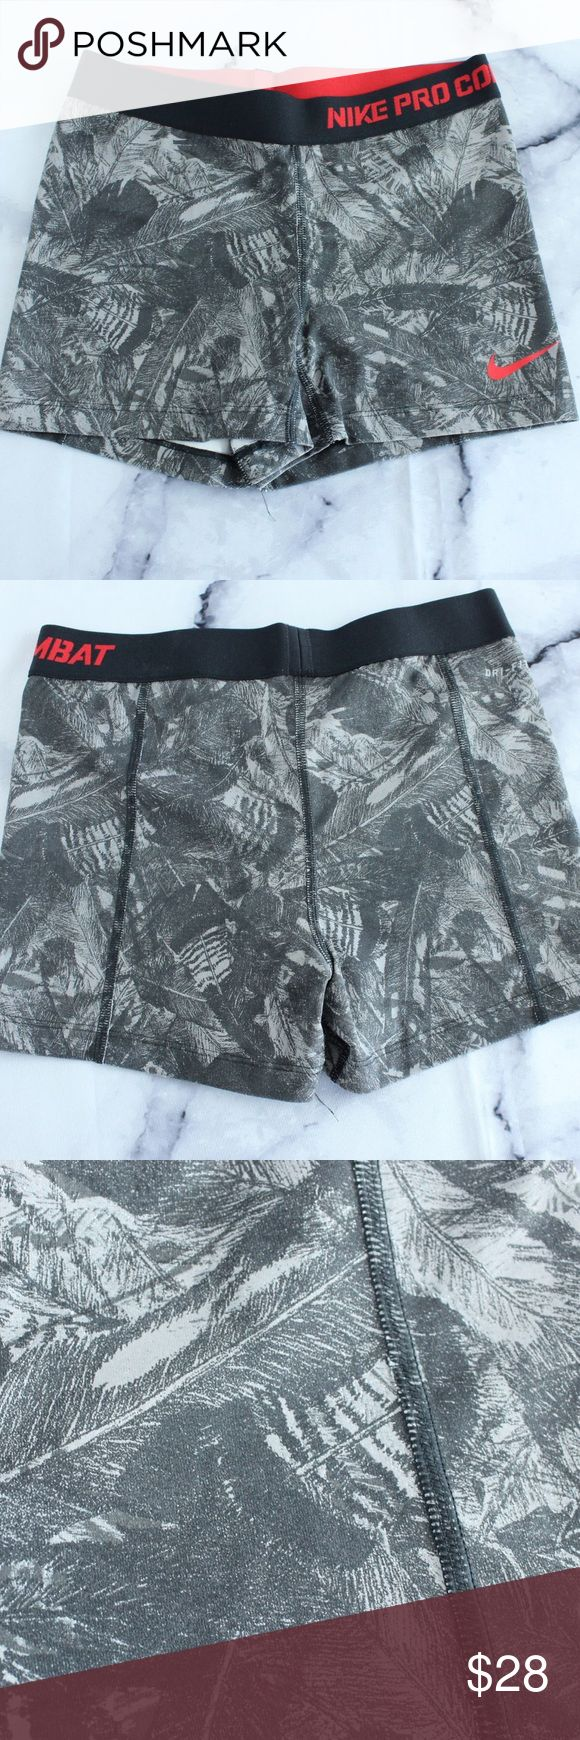 Nike Pro Combat Shorts Feather Print Red Band M CONDITION: used SIZE/FIT/STRETCH:   M on the tag. They are stretchy, but they fit true to size. FLAWS: No pilling, stains, or rips. Feel free to make an offer -OR- bundle your likes for me and I'll send you an offer with an exclusive discount! Nike Shorts